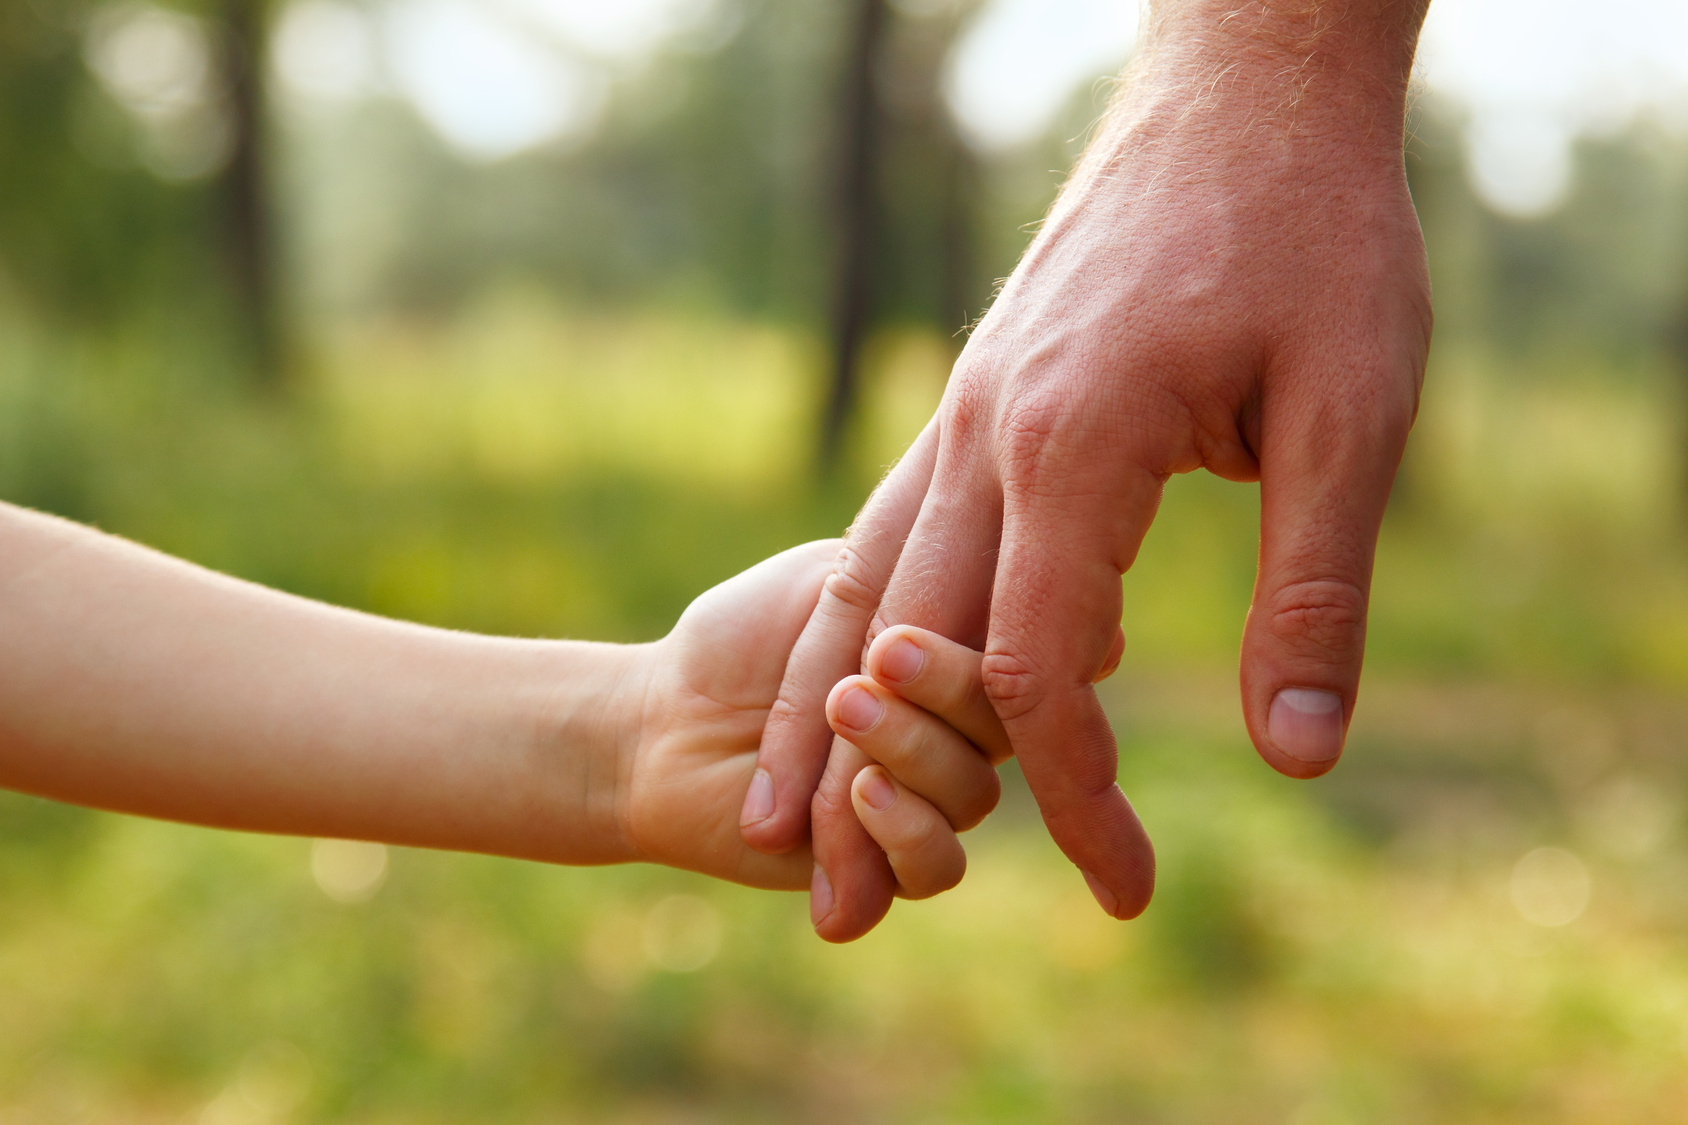 Father-Son-Holding-Hands.jpg [source:https://blog.smartthings.com]